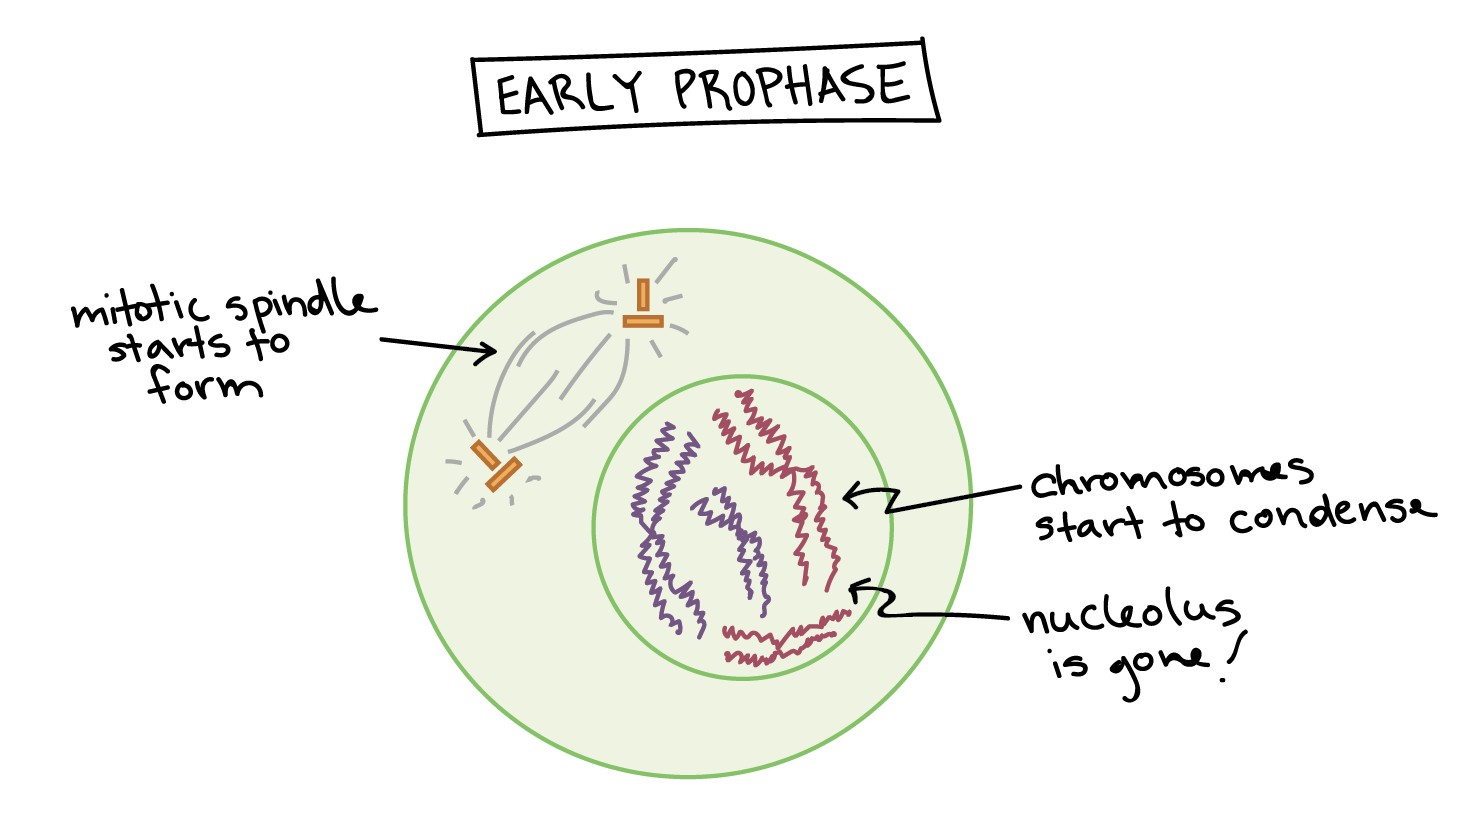 stages of mitosis diagram labeled 1998 dodge dakota headlight wiring phases biology article khan academy the mitotic spindle starts to form chromosomes start condense